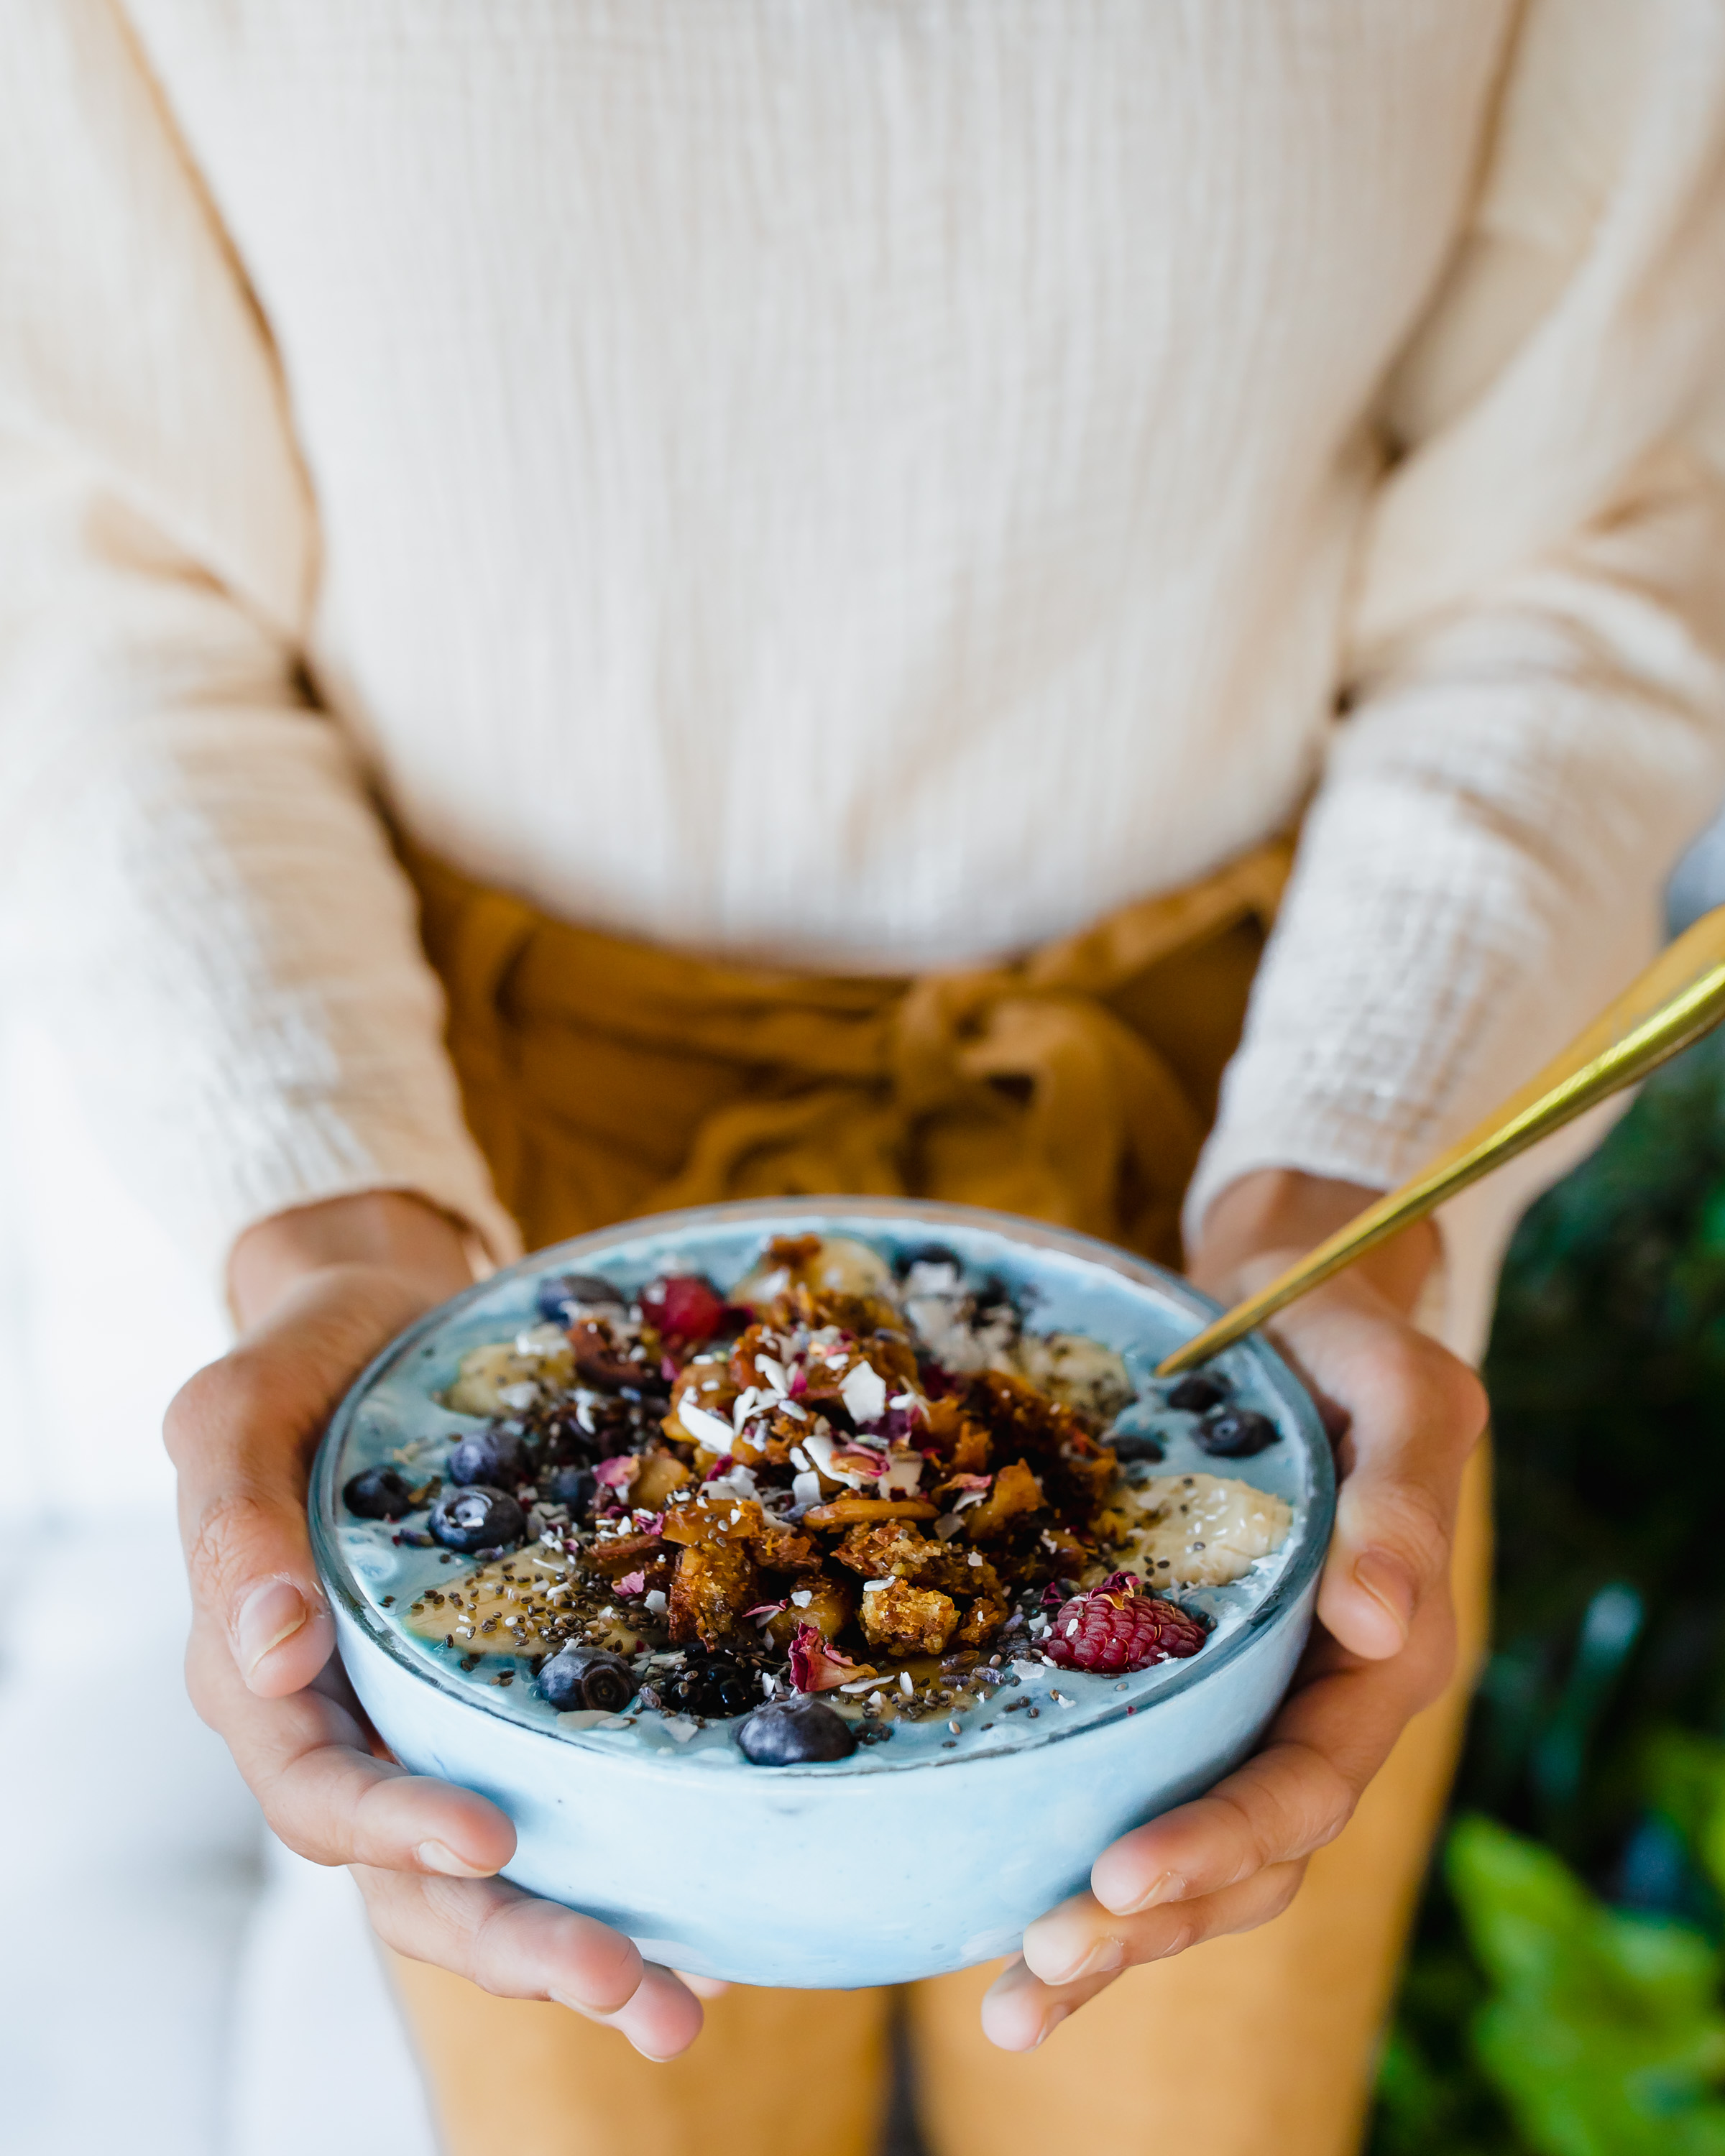 Blue Majik Smoothie Bowl - Made with Blue Majik, banana and coconut yogurt, this smoothie bowl is full of color and flavor. I loved the house- made granola and berries on top.